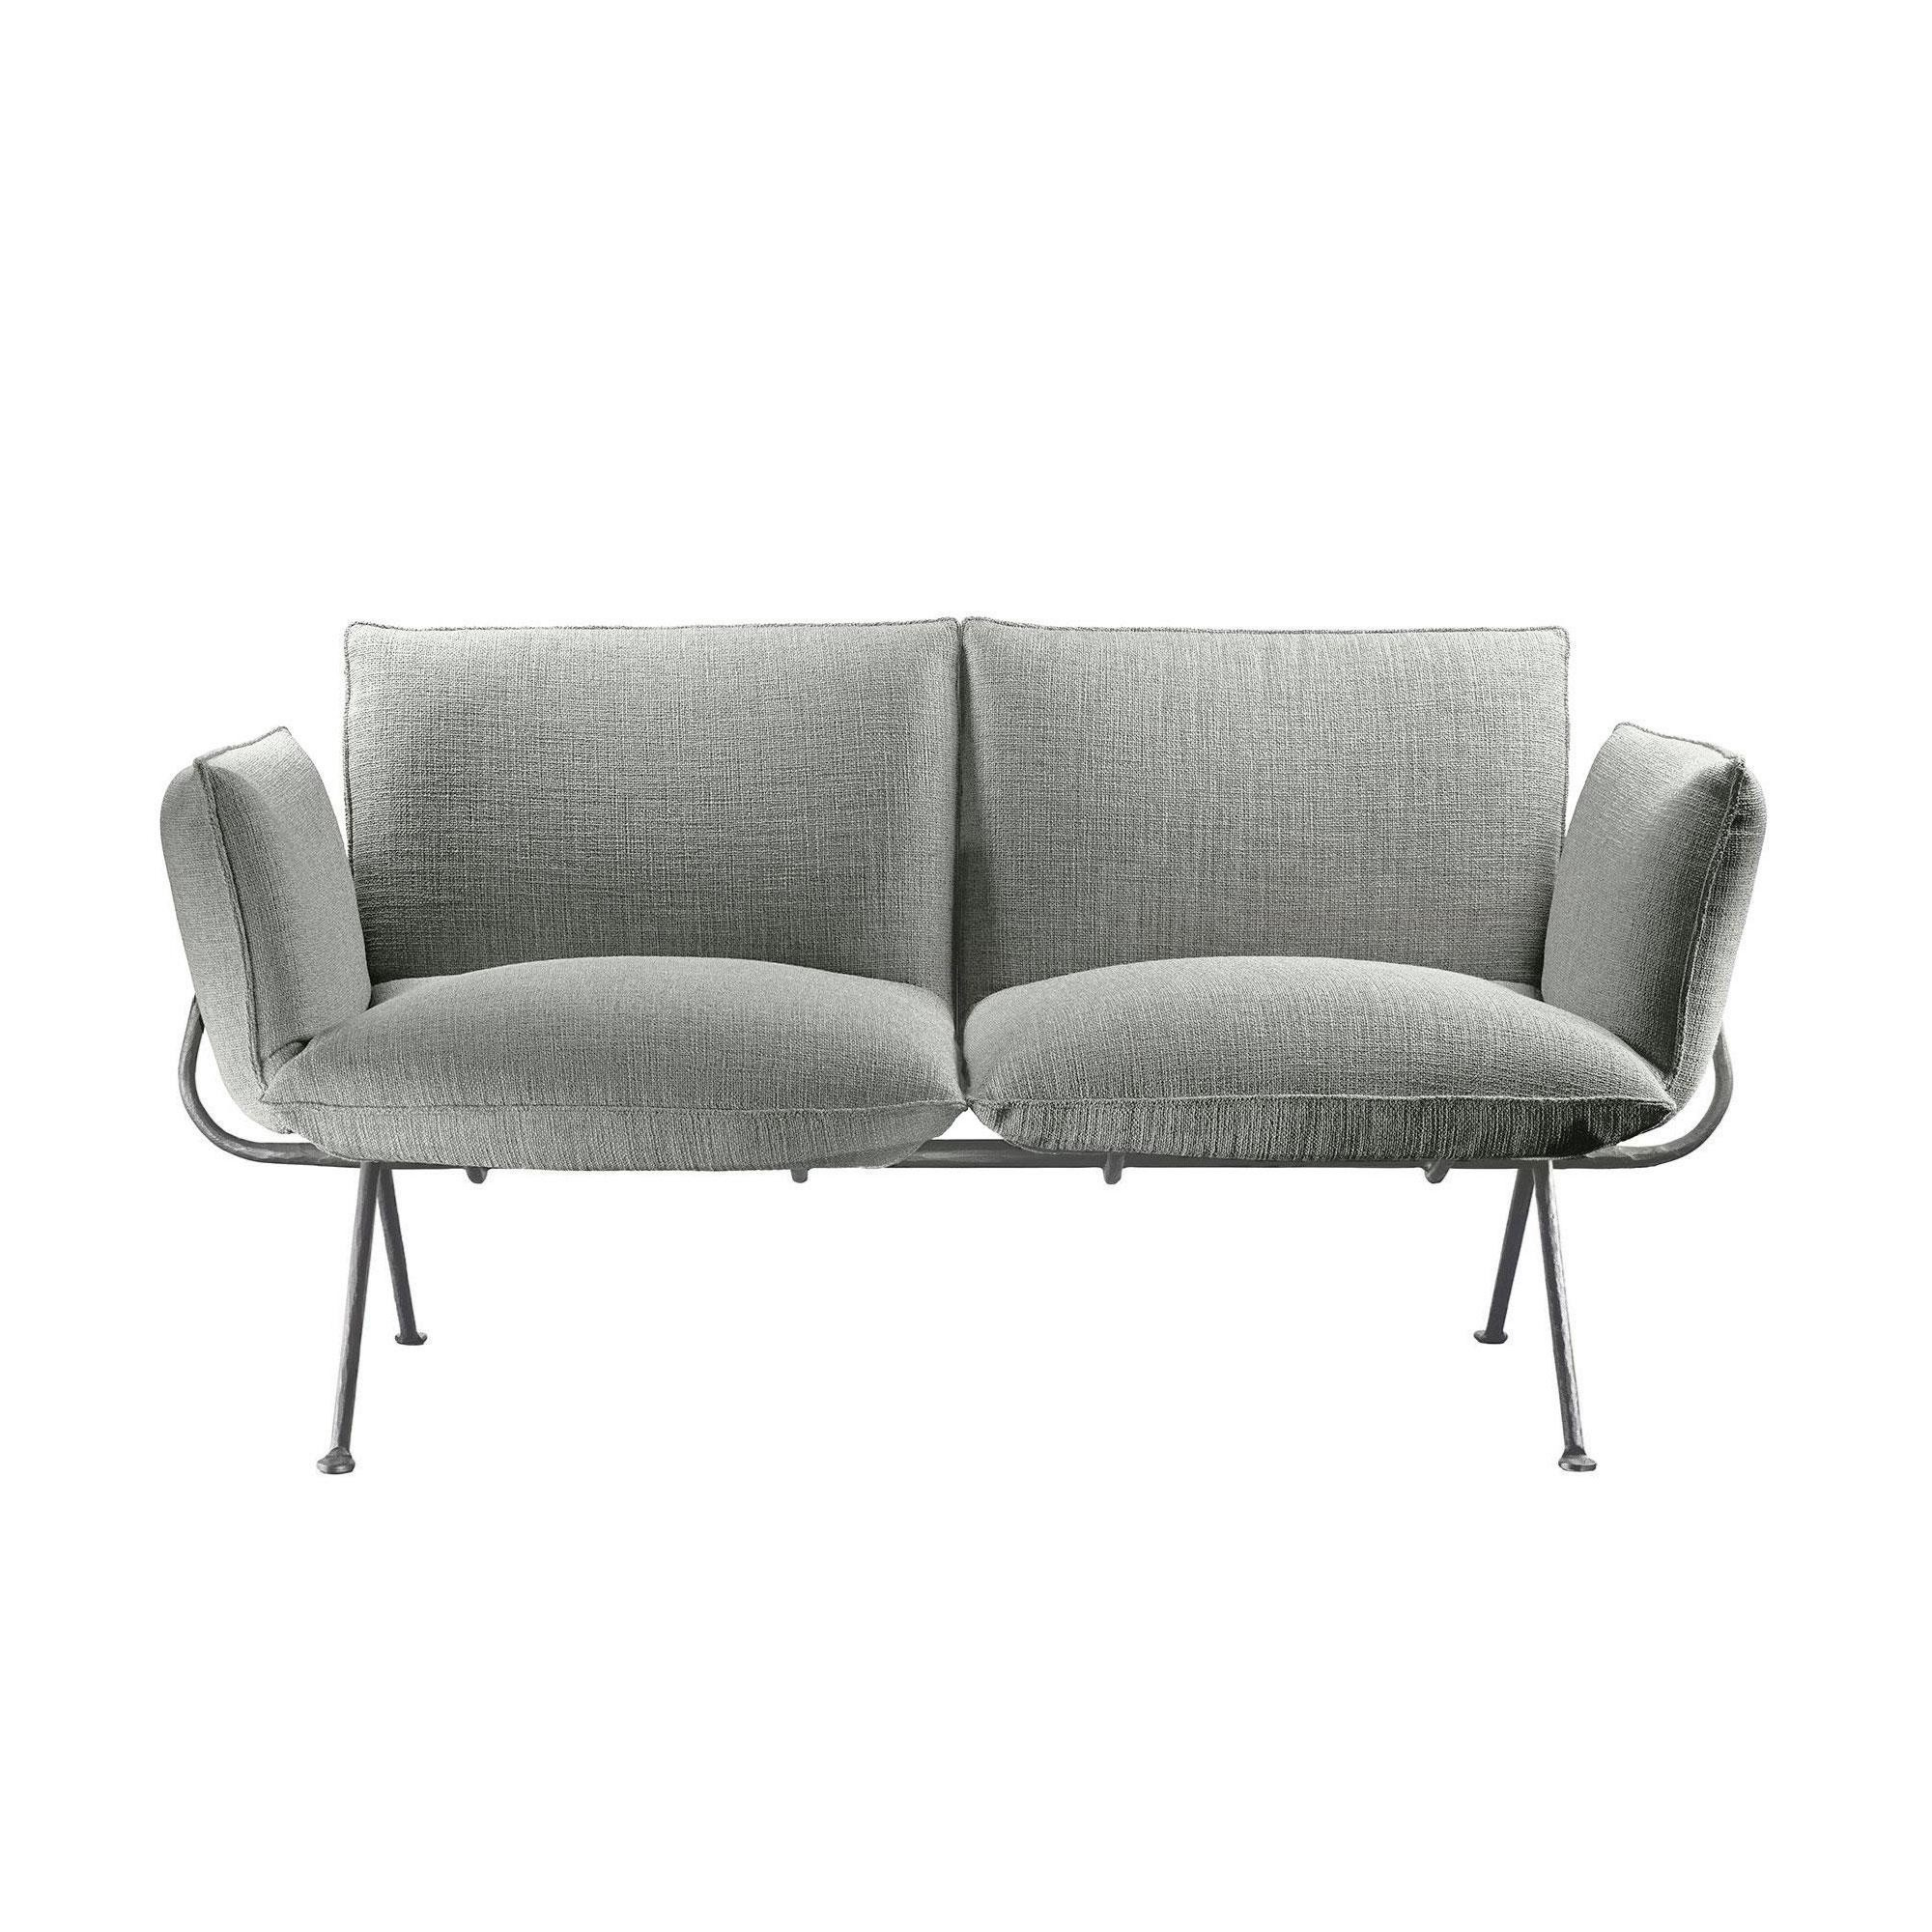 Officina 2 Seater Sofa